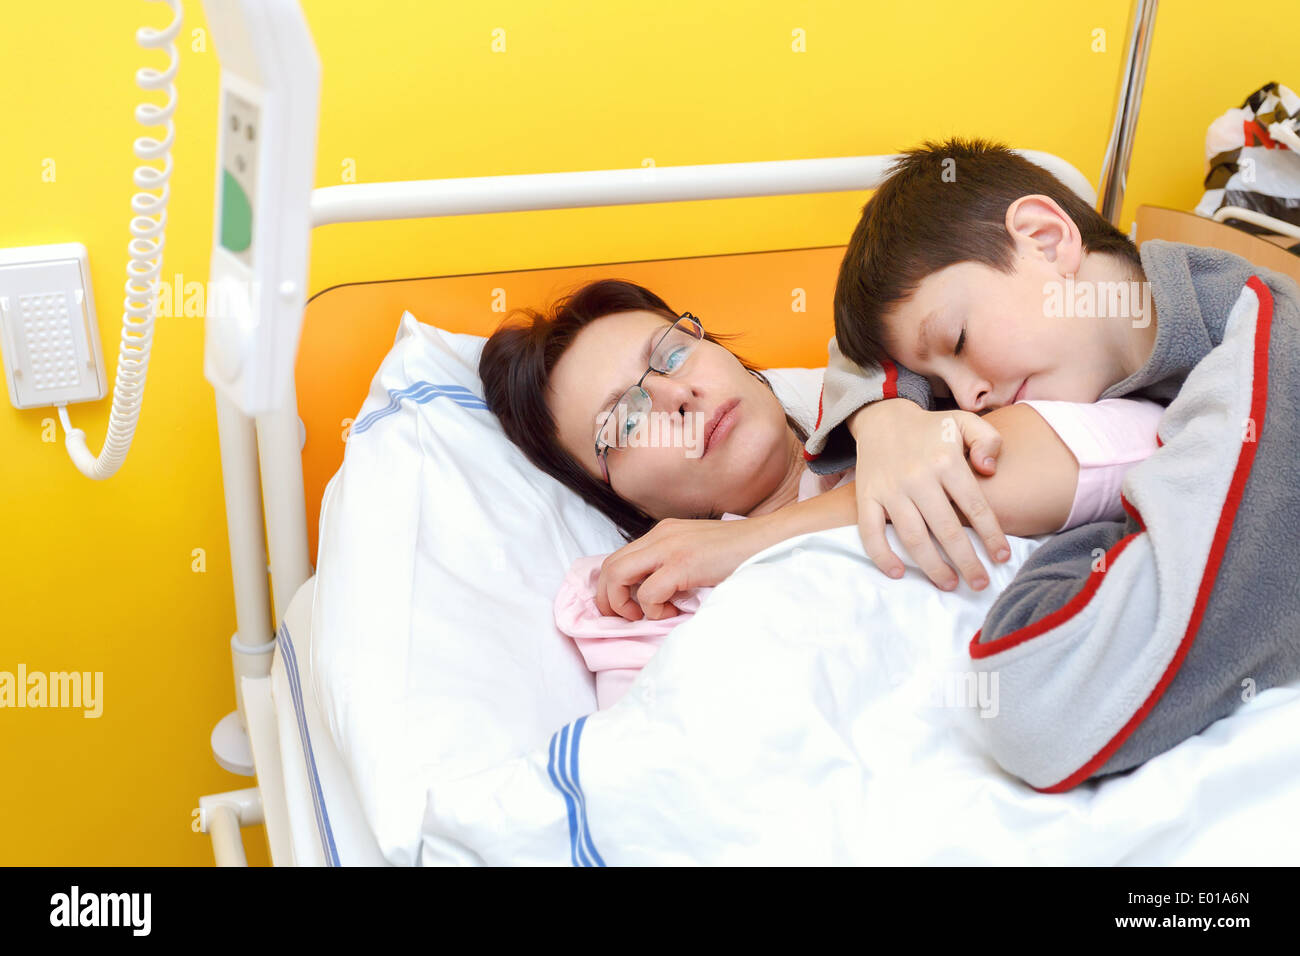 Real people in real situation, sad middle-aged woman lying in hospital with pneumonia, son visit his mother - Stock Image